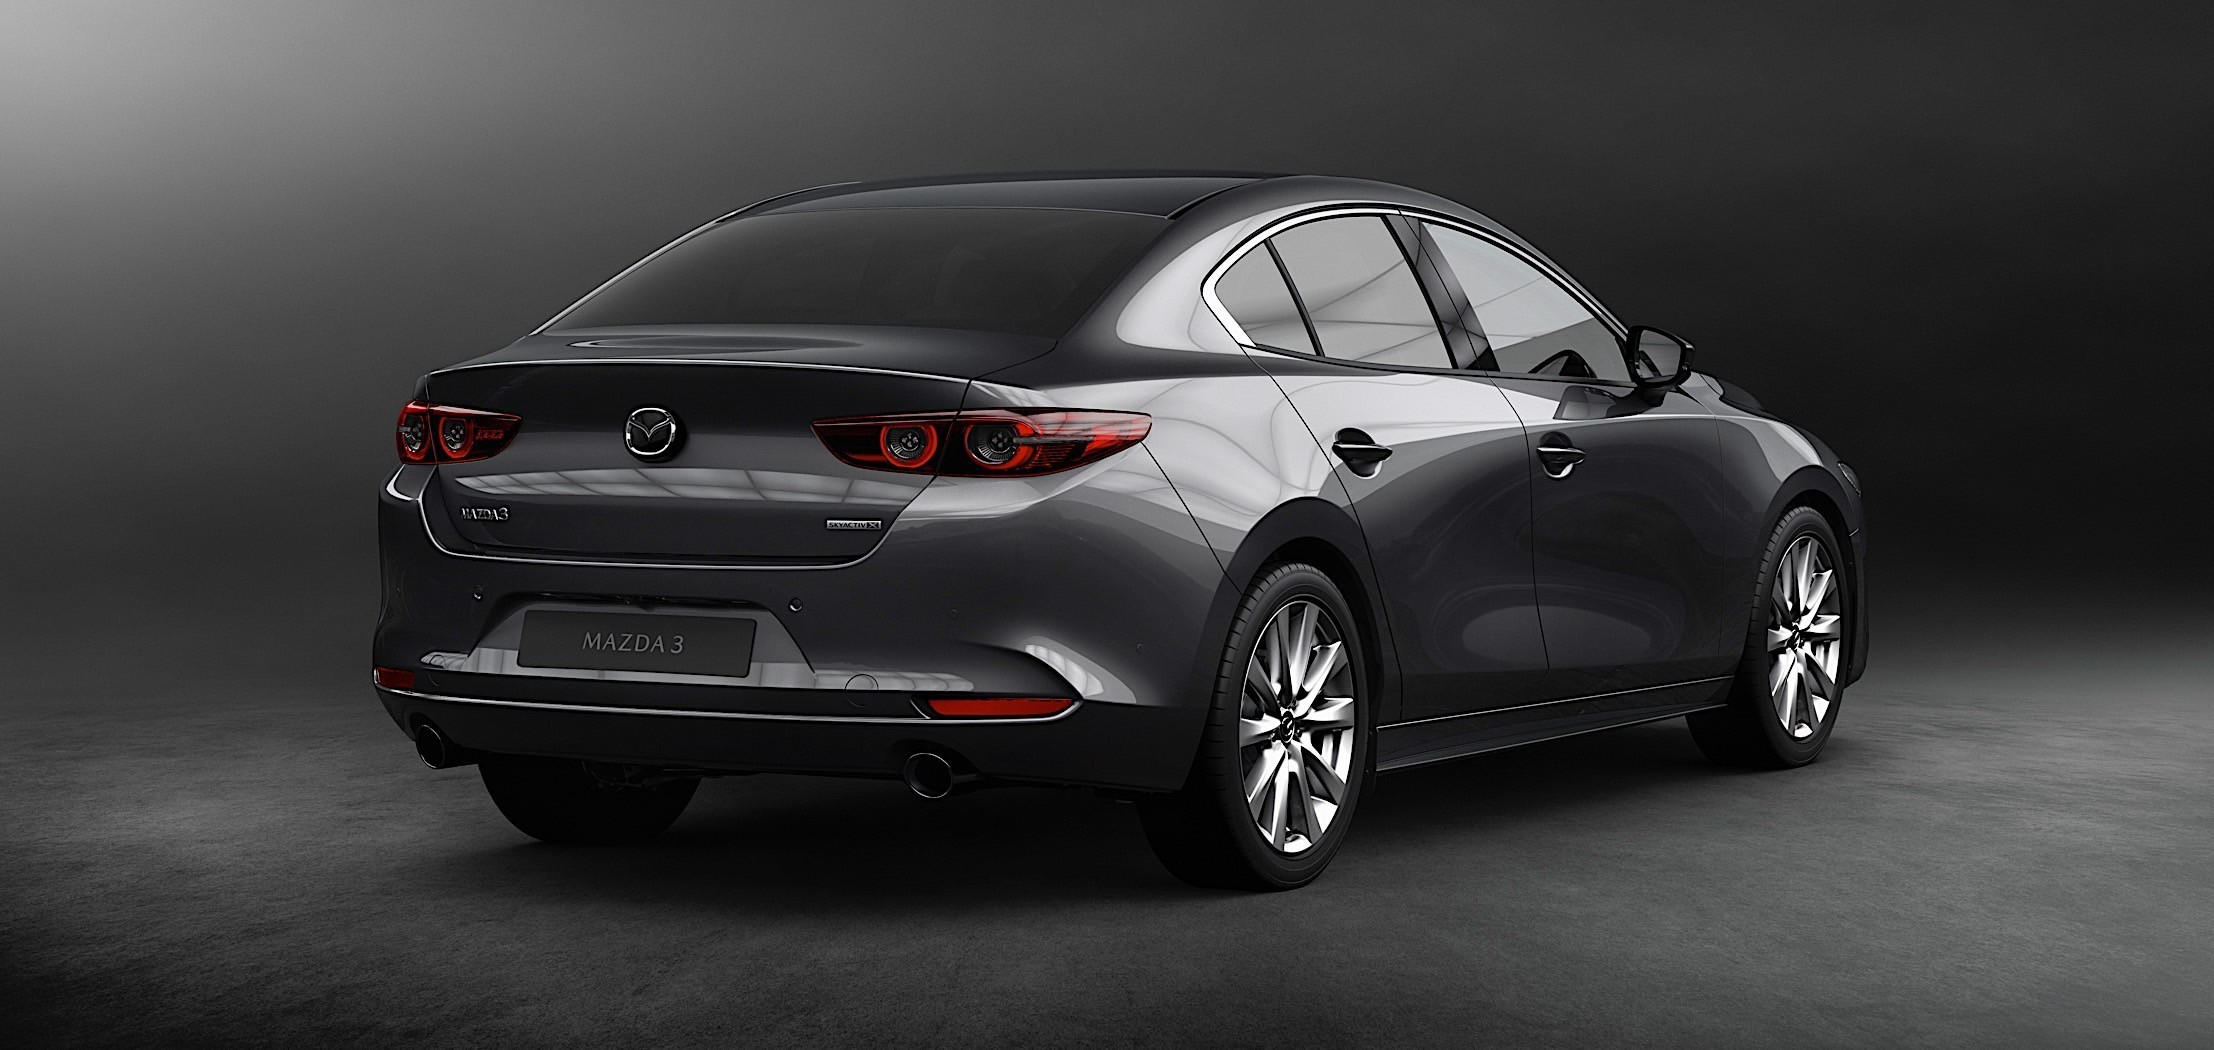 rear view of a grey Mazda3 SKYACTIV-G